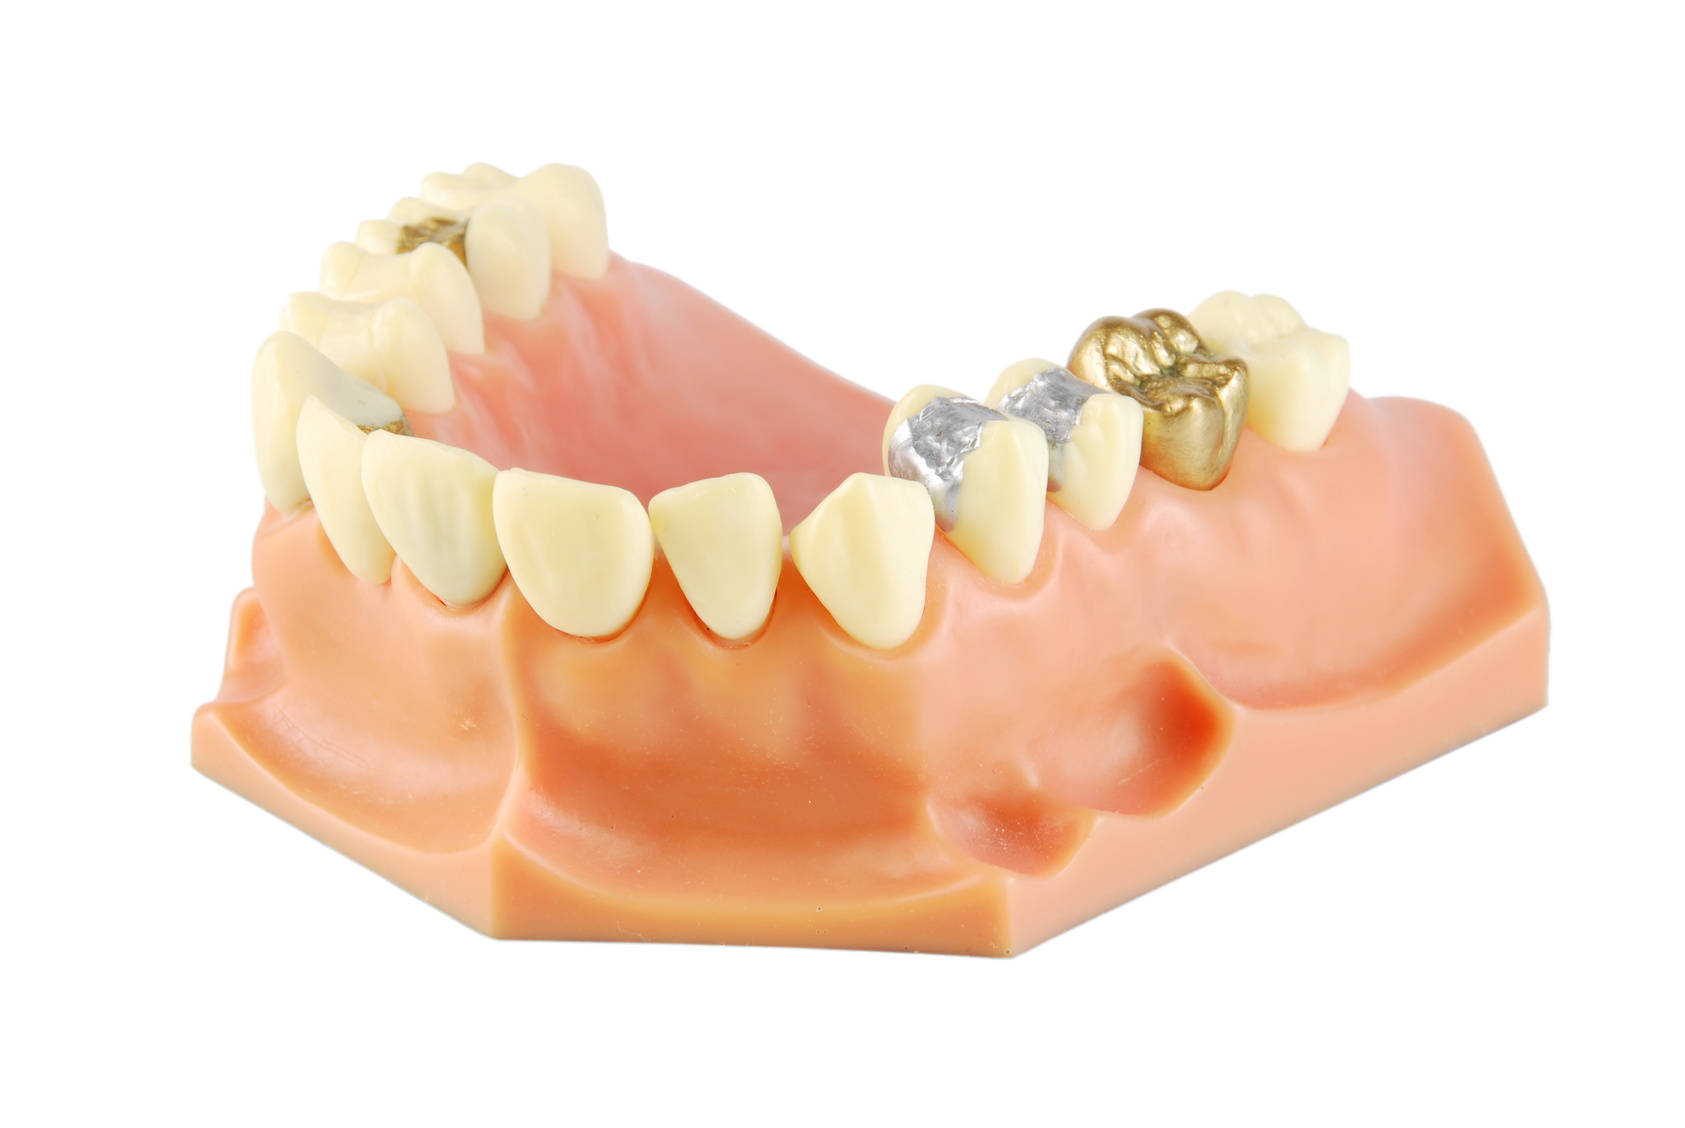 Porcelain is worth more than silver when it comes to your smile!